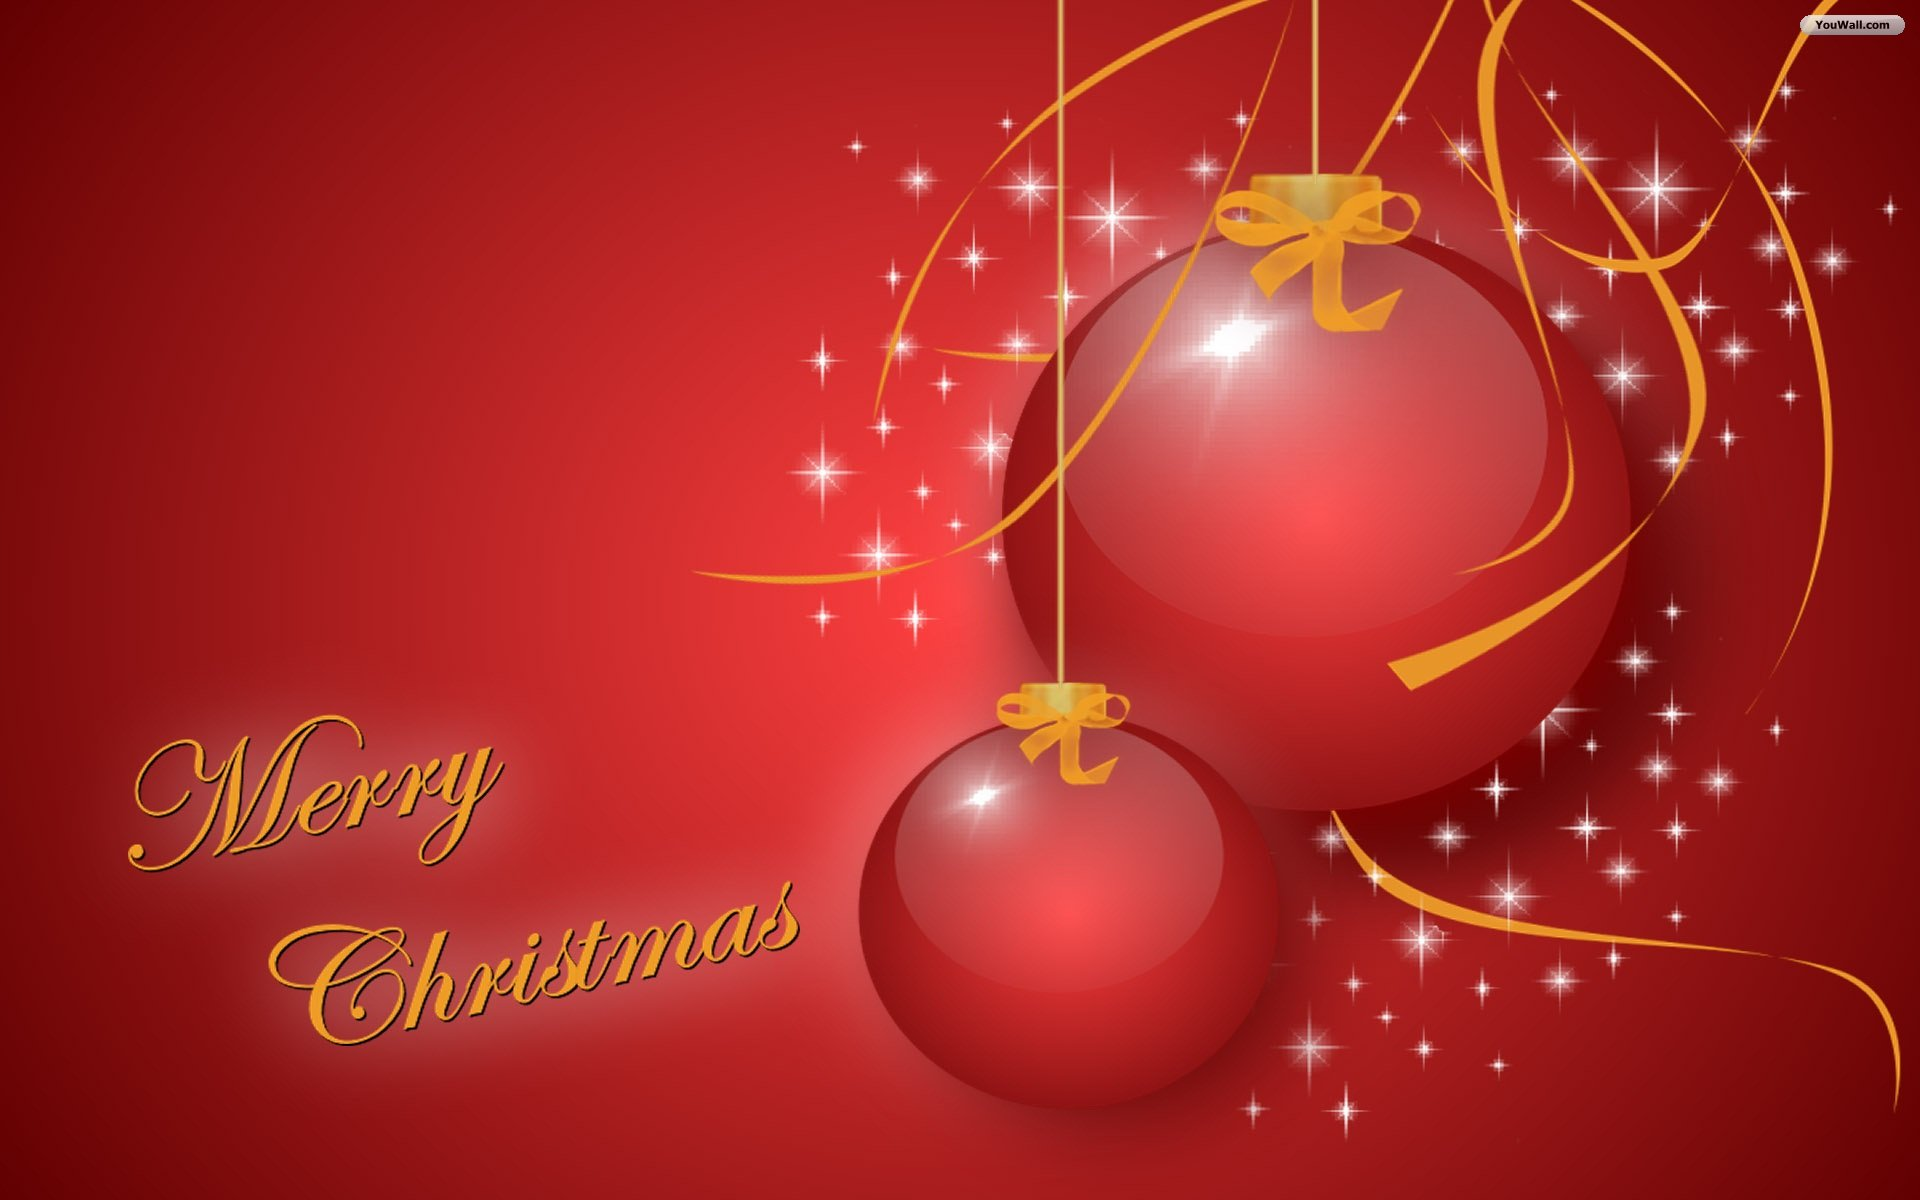 Merry Christmas Wallpaper   wallpaperwallpapersfree wallpaper 1920x1200